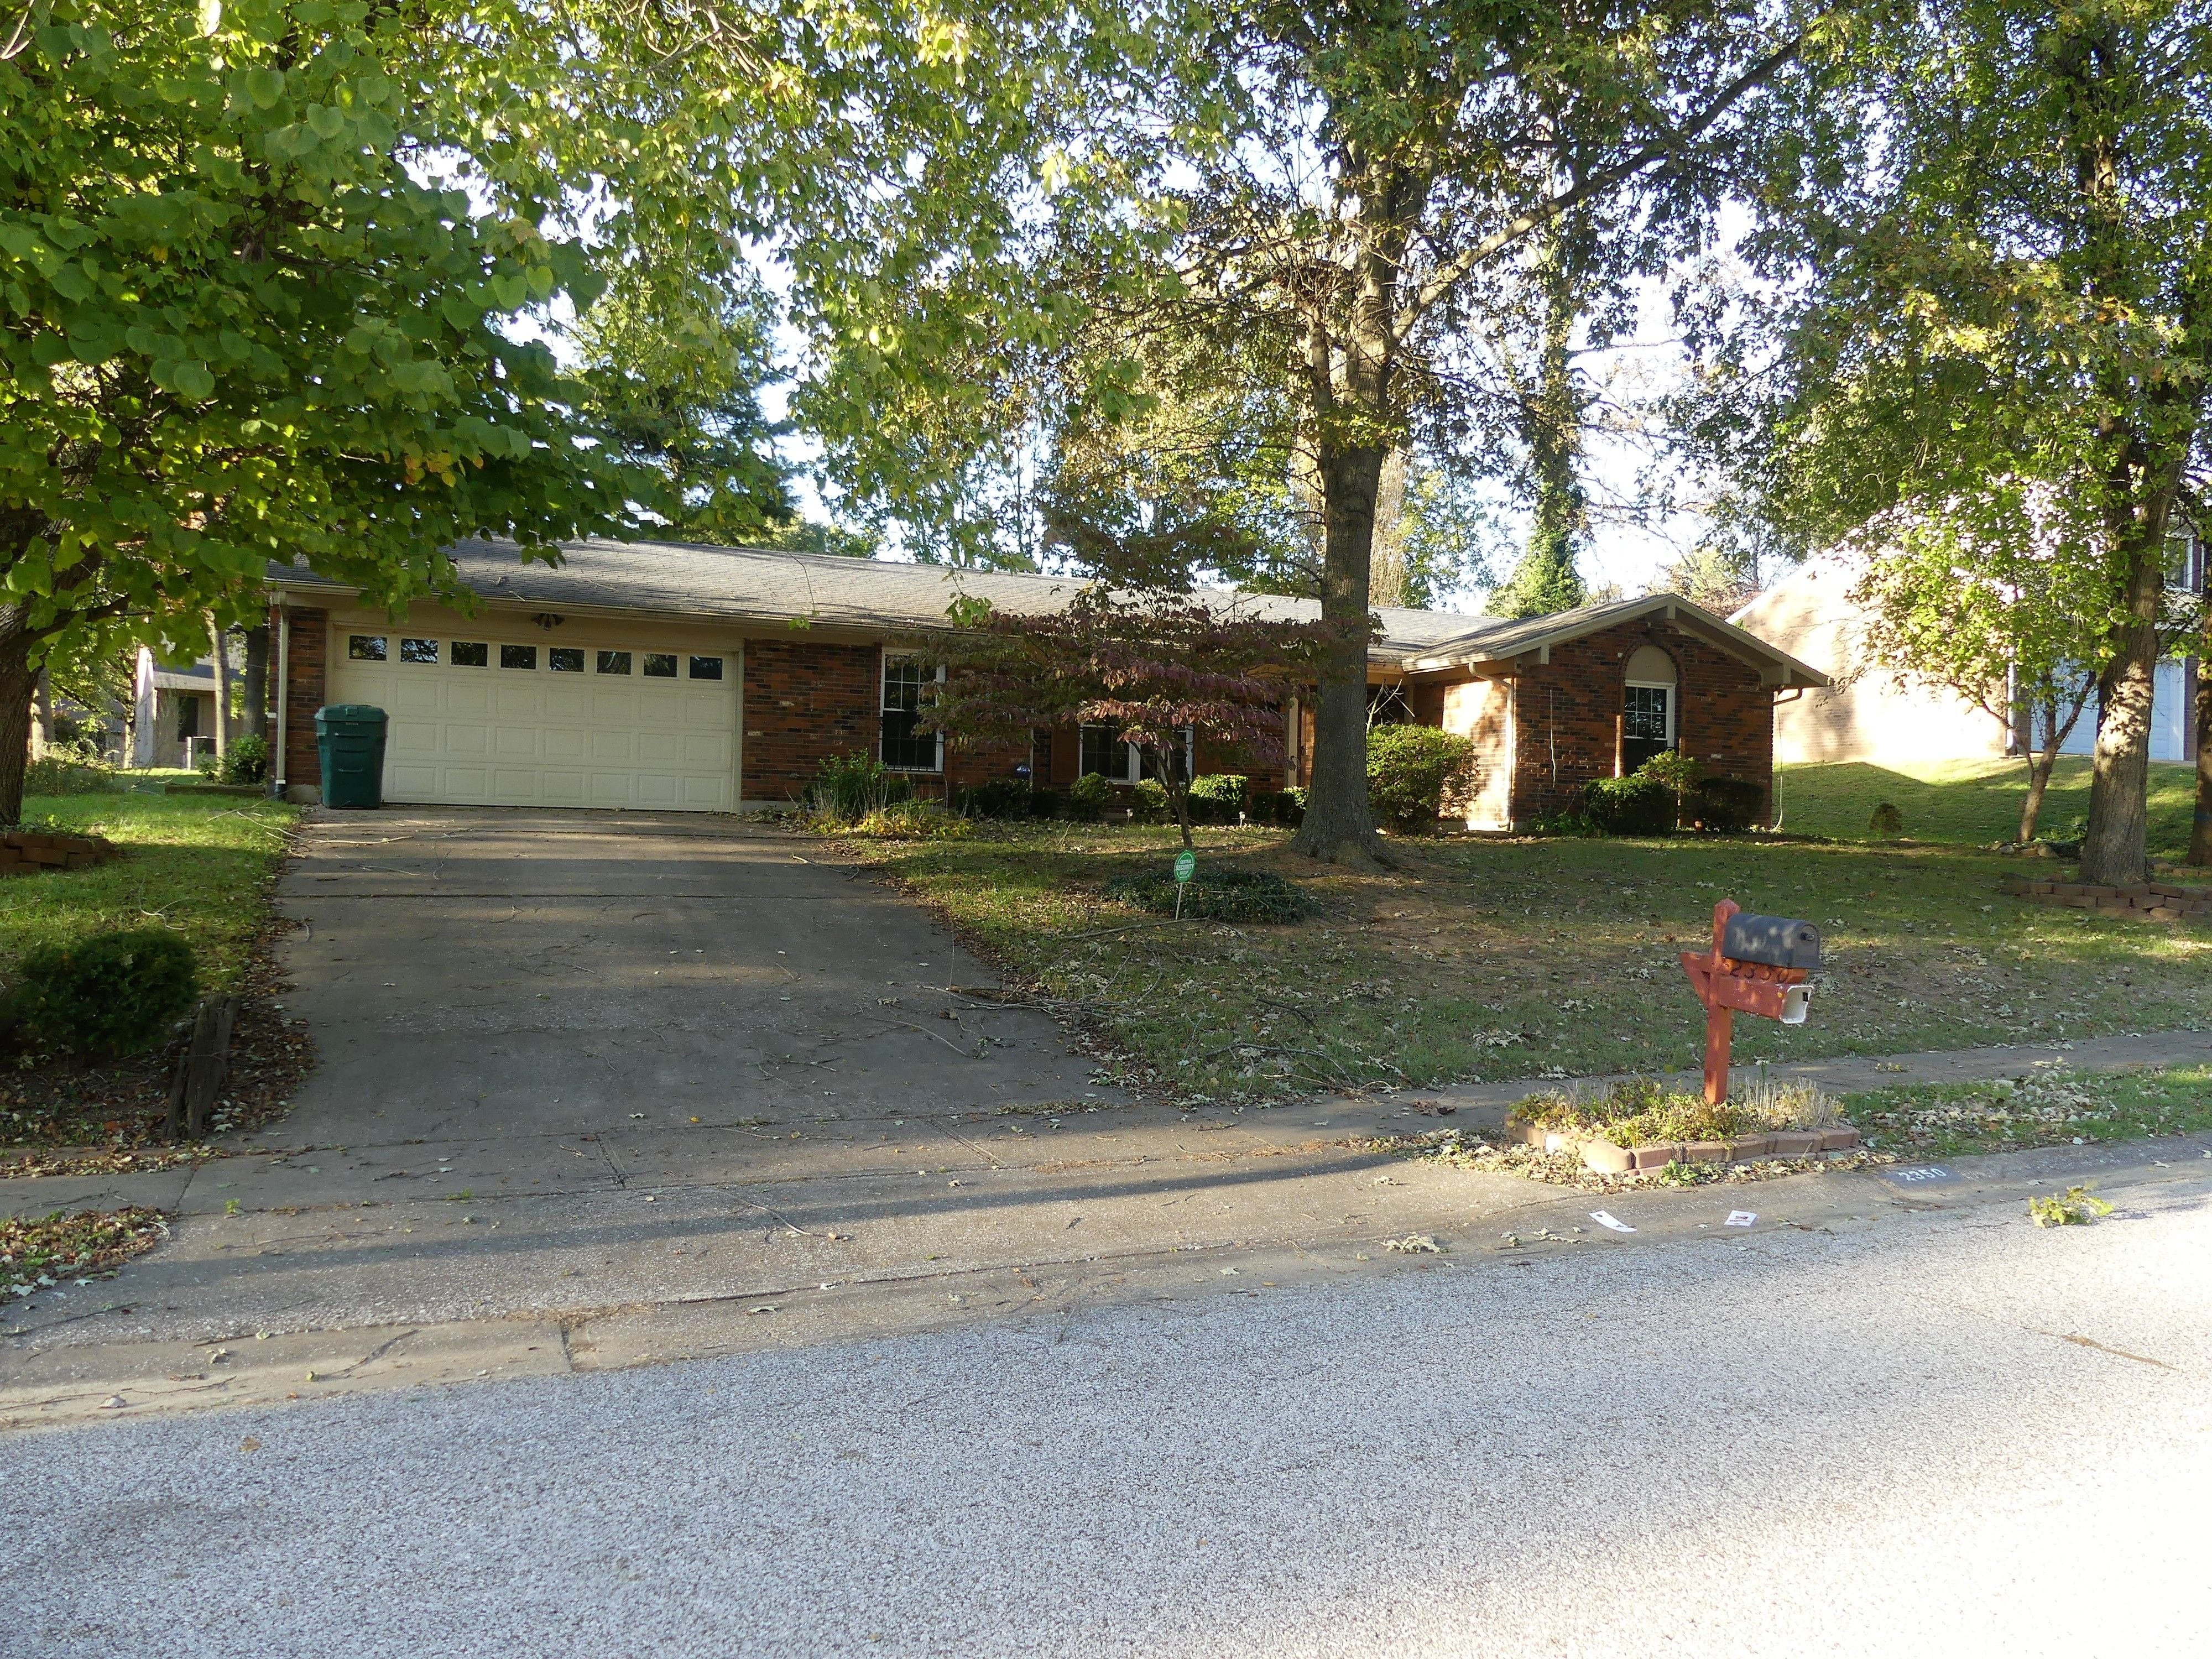 2350 Crescent Hill Dr 139 000 Cooperating Company Re Max Professional Realty Group Realty Real Estate Owensboro 1 in österreich & weltweit. pinterest